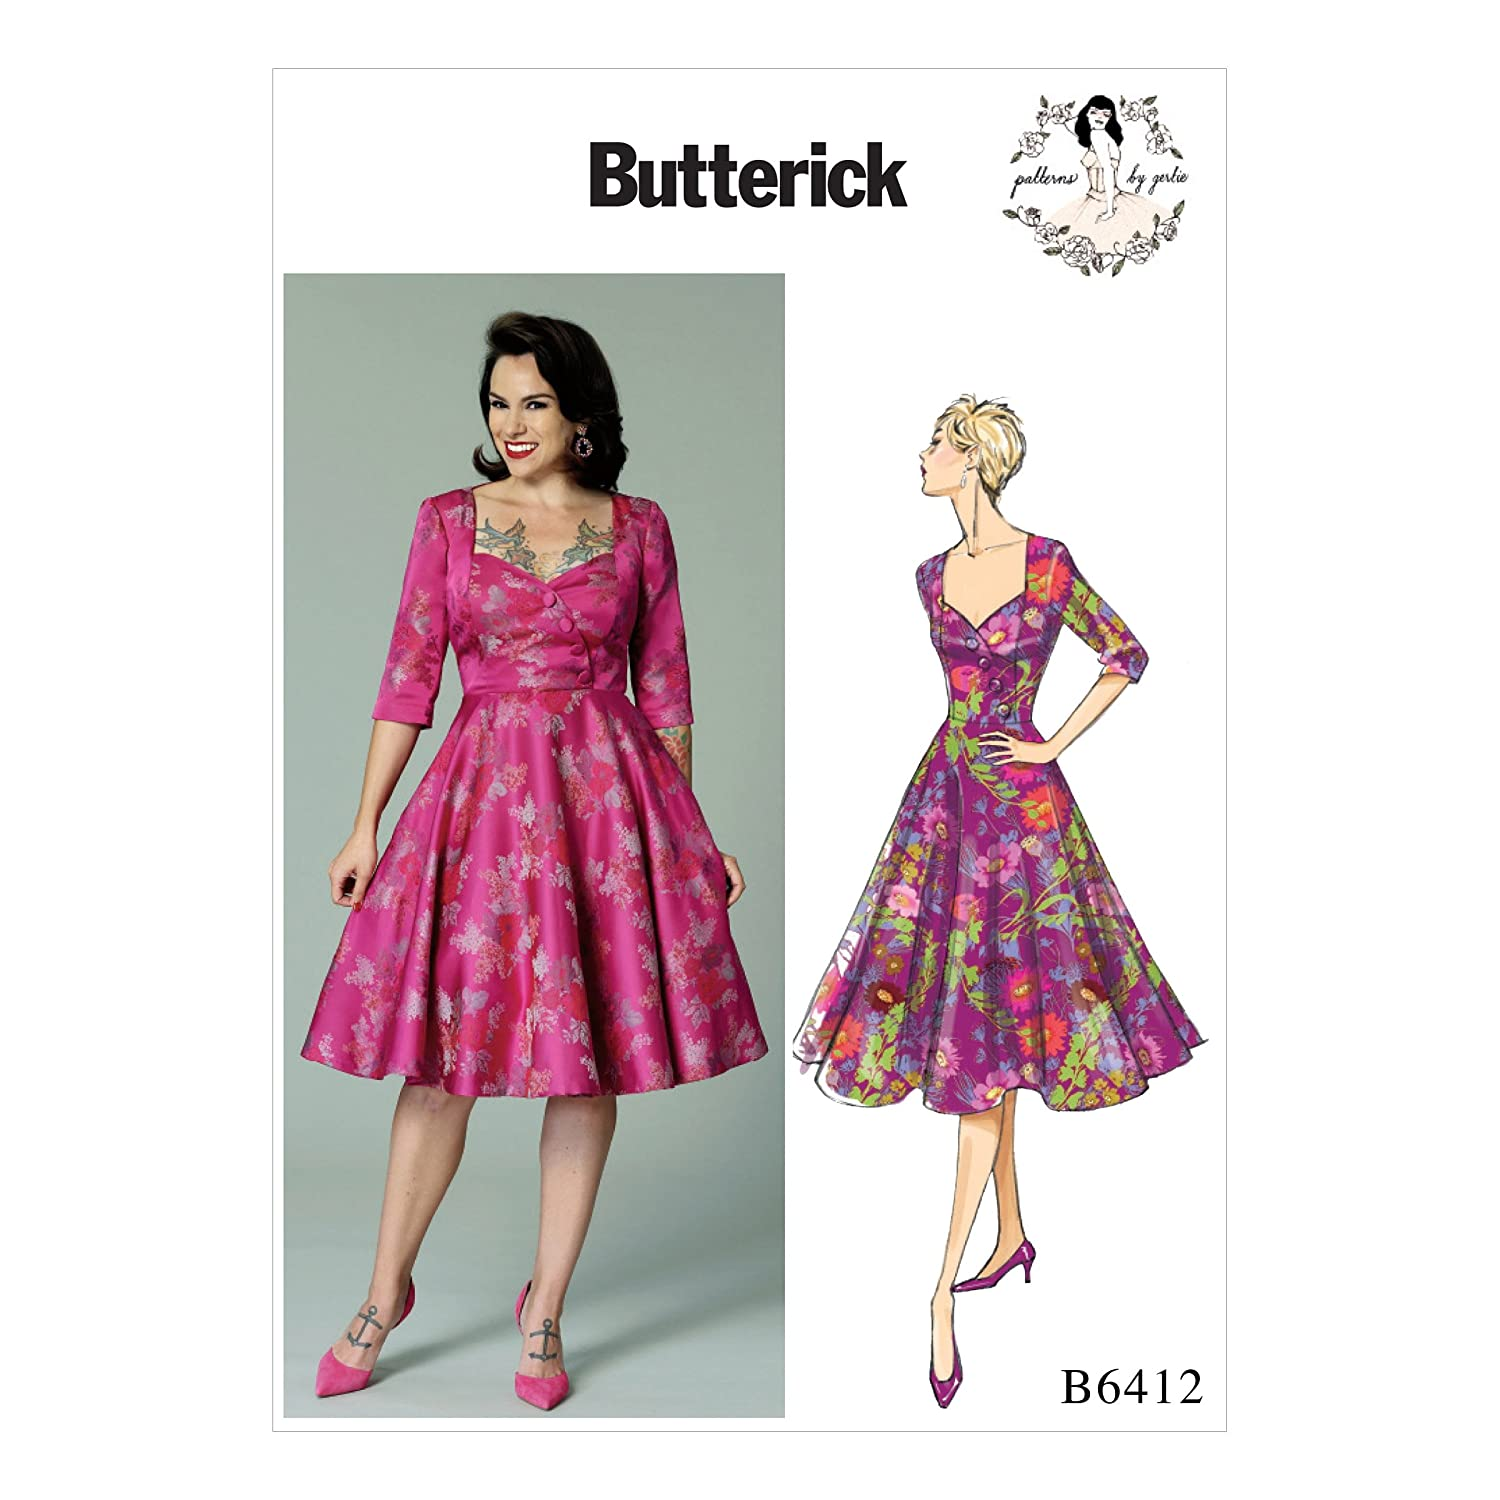 1950s Sewing Patterns | Dresses, Skirts, Tops, Mens Butterick B6412 A5 Misses Sweetheart-Neckline Full-Skirted Dress Pattern by Gertie With Button Yoke Size 6-8-10-12-14 $13.41 AT vintagedancer.com